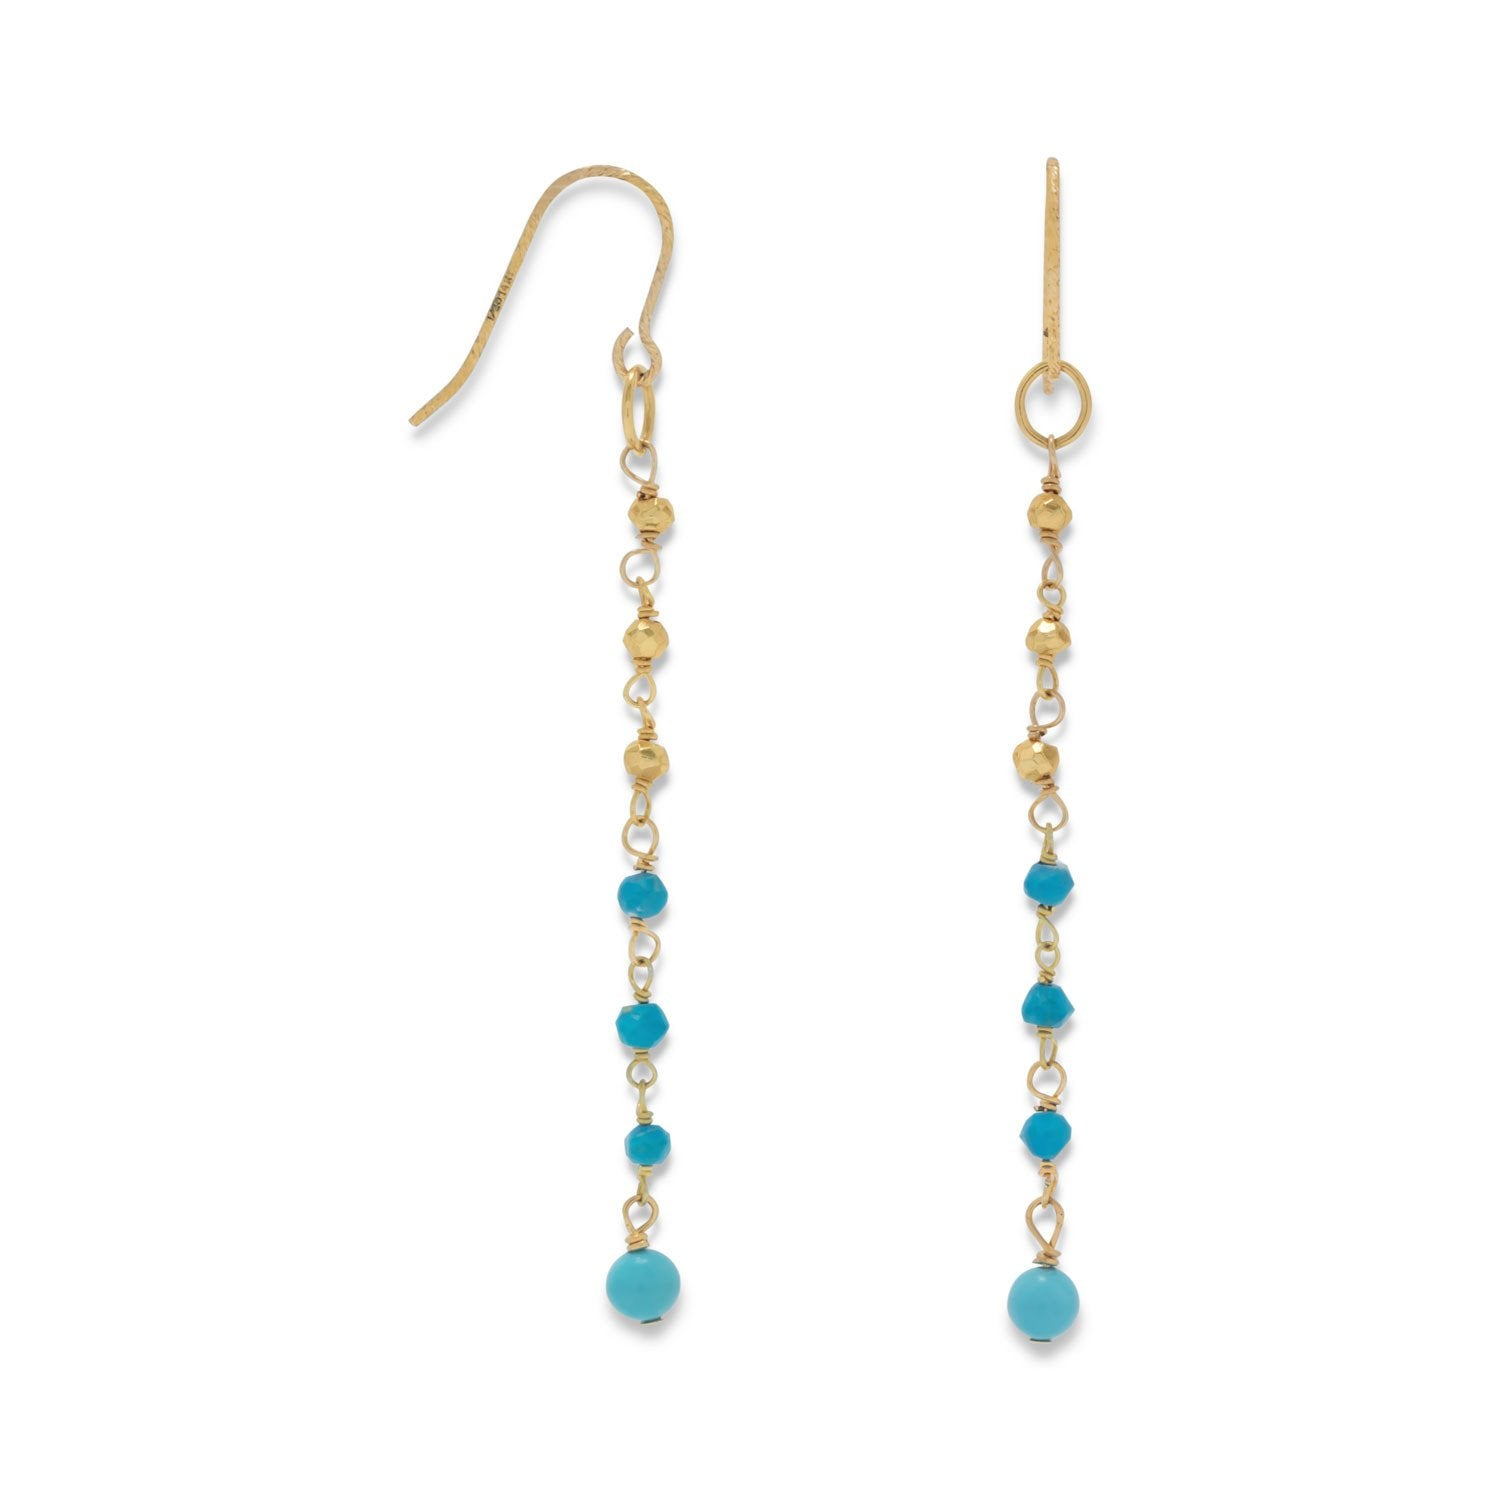 14K Gold Plated French Wire Earrings with Reconstituted Turquoise Beads - Rocky Mt. Discount Outlet